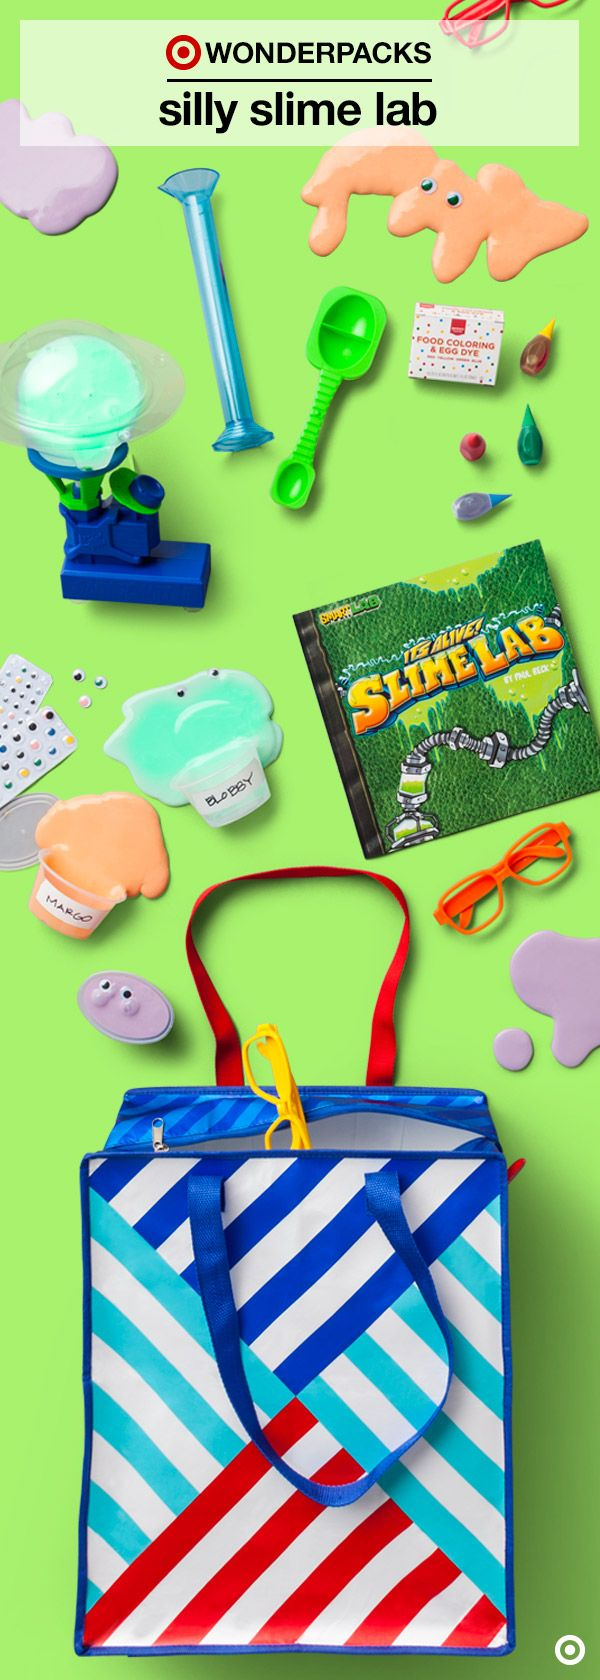 Get your hands dirty with some seriously silly science experiments. In this Silly Slime Lab Wonderpack, kids get their summer STEM activity fix in the most fun way possible! Zipped into a handy tote is almost everything you need to concoct and invent, including an activity book full of instructions, inspiration and ideas.  Click to find out more about Silly Slime Lab, and discover new Wonderpacks for endless summer fun. Get them before they're gone!